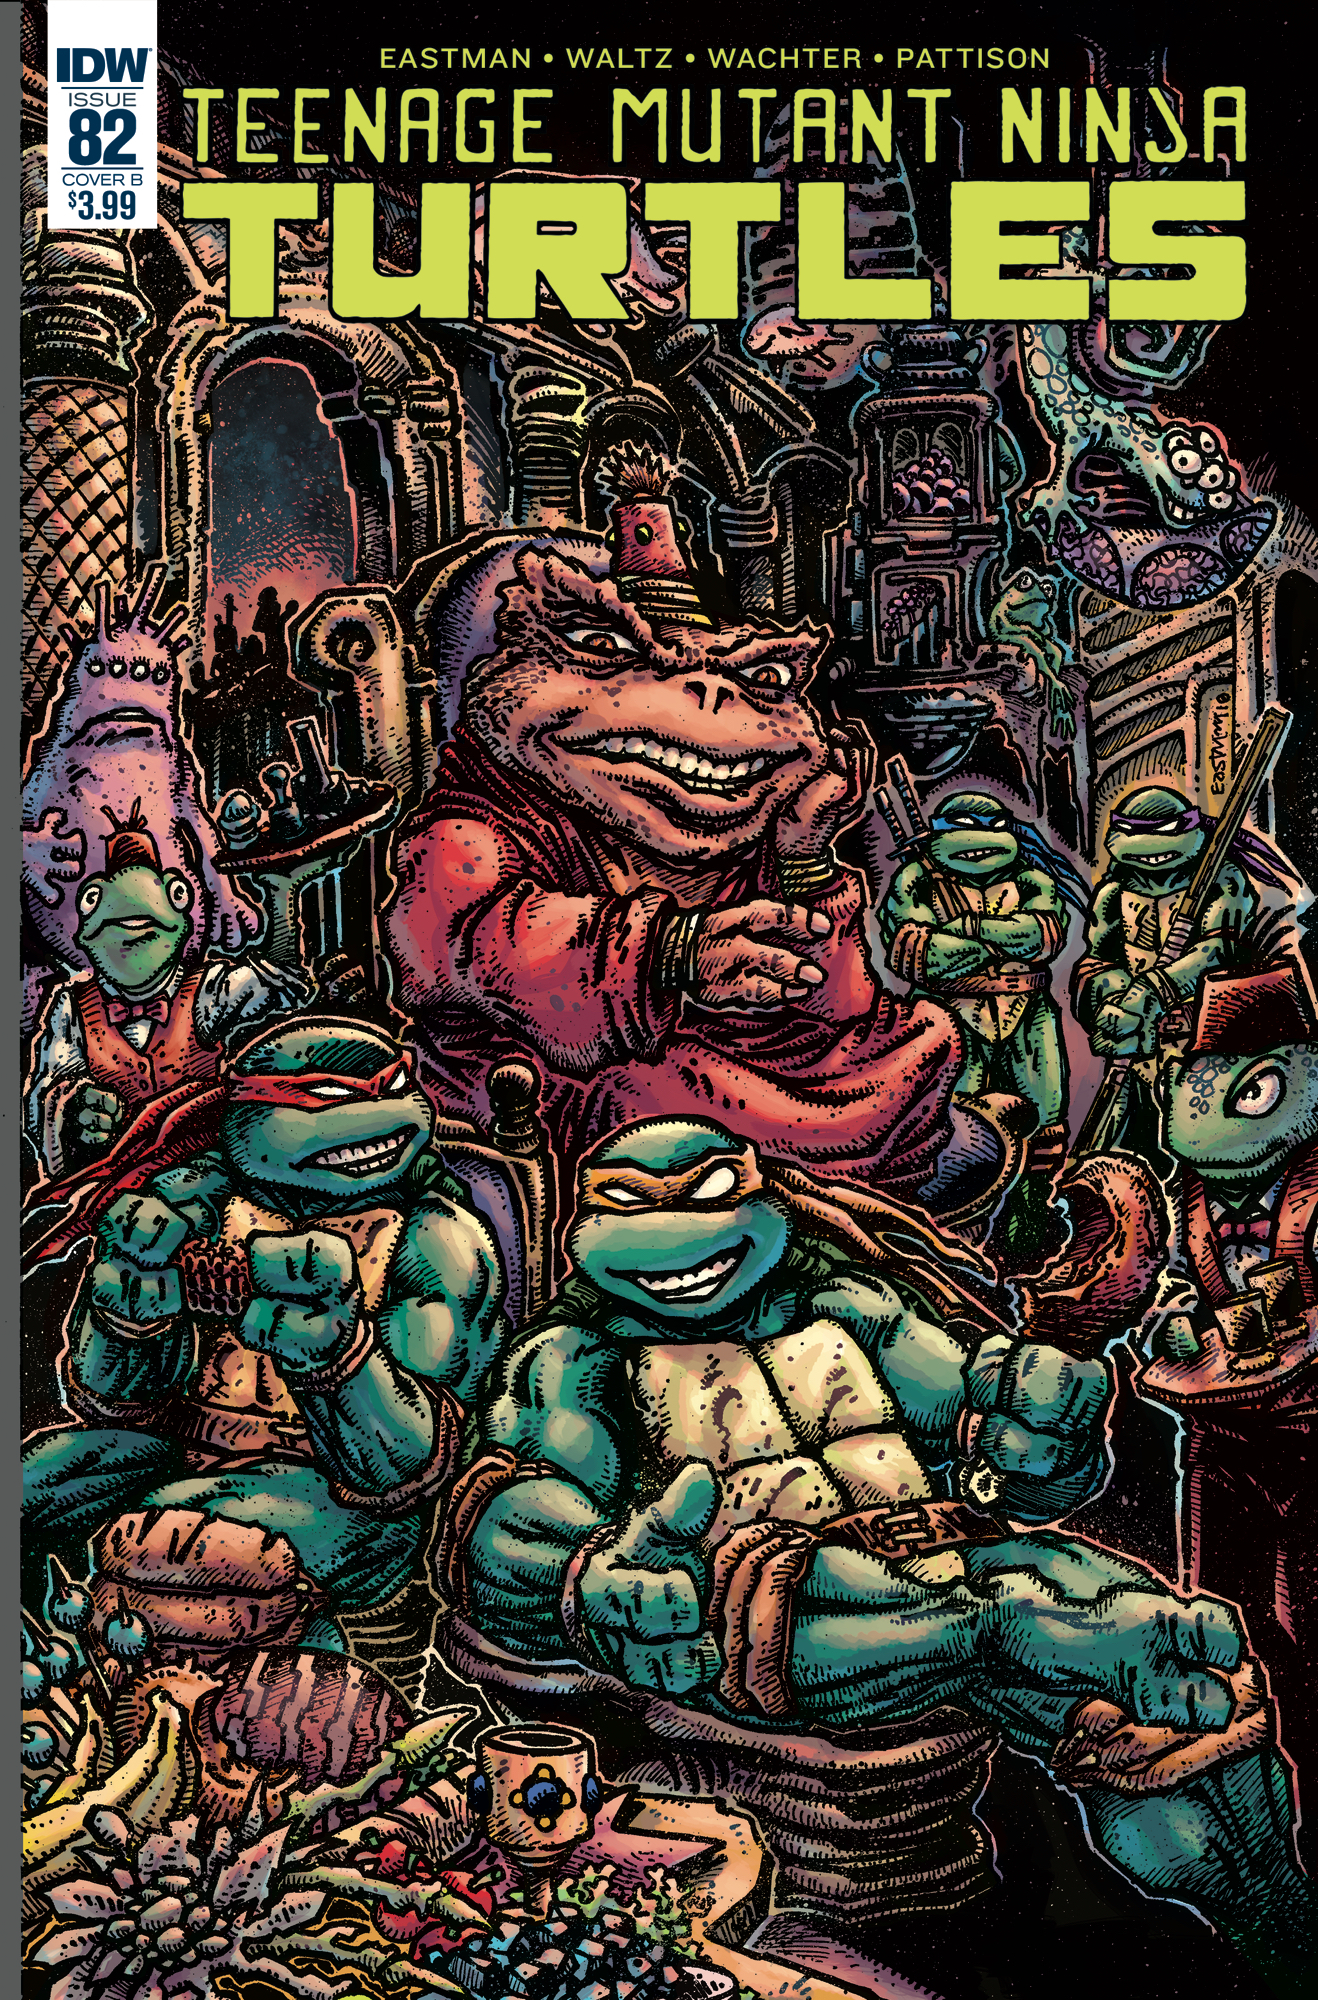 TMNT ONGOING #82 CVR B EASTMAN